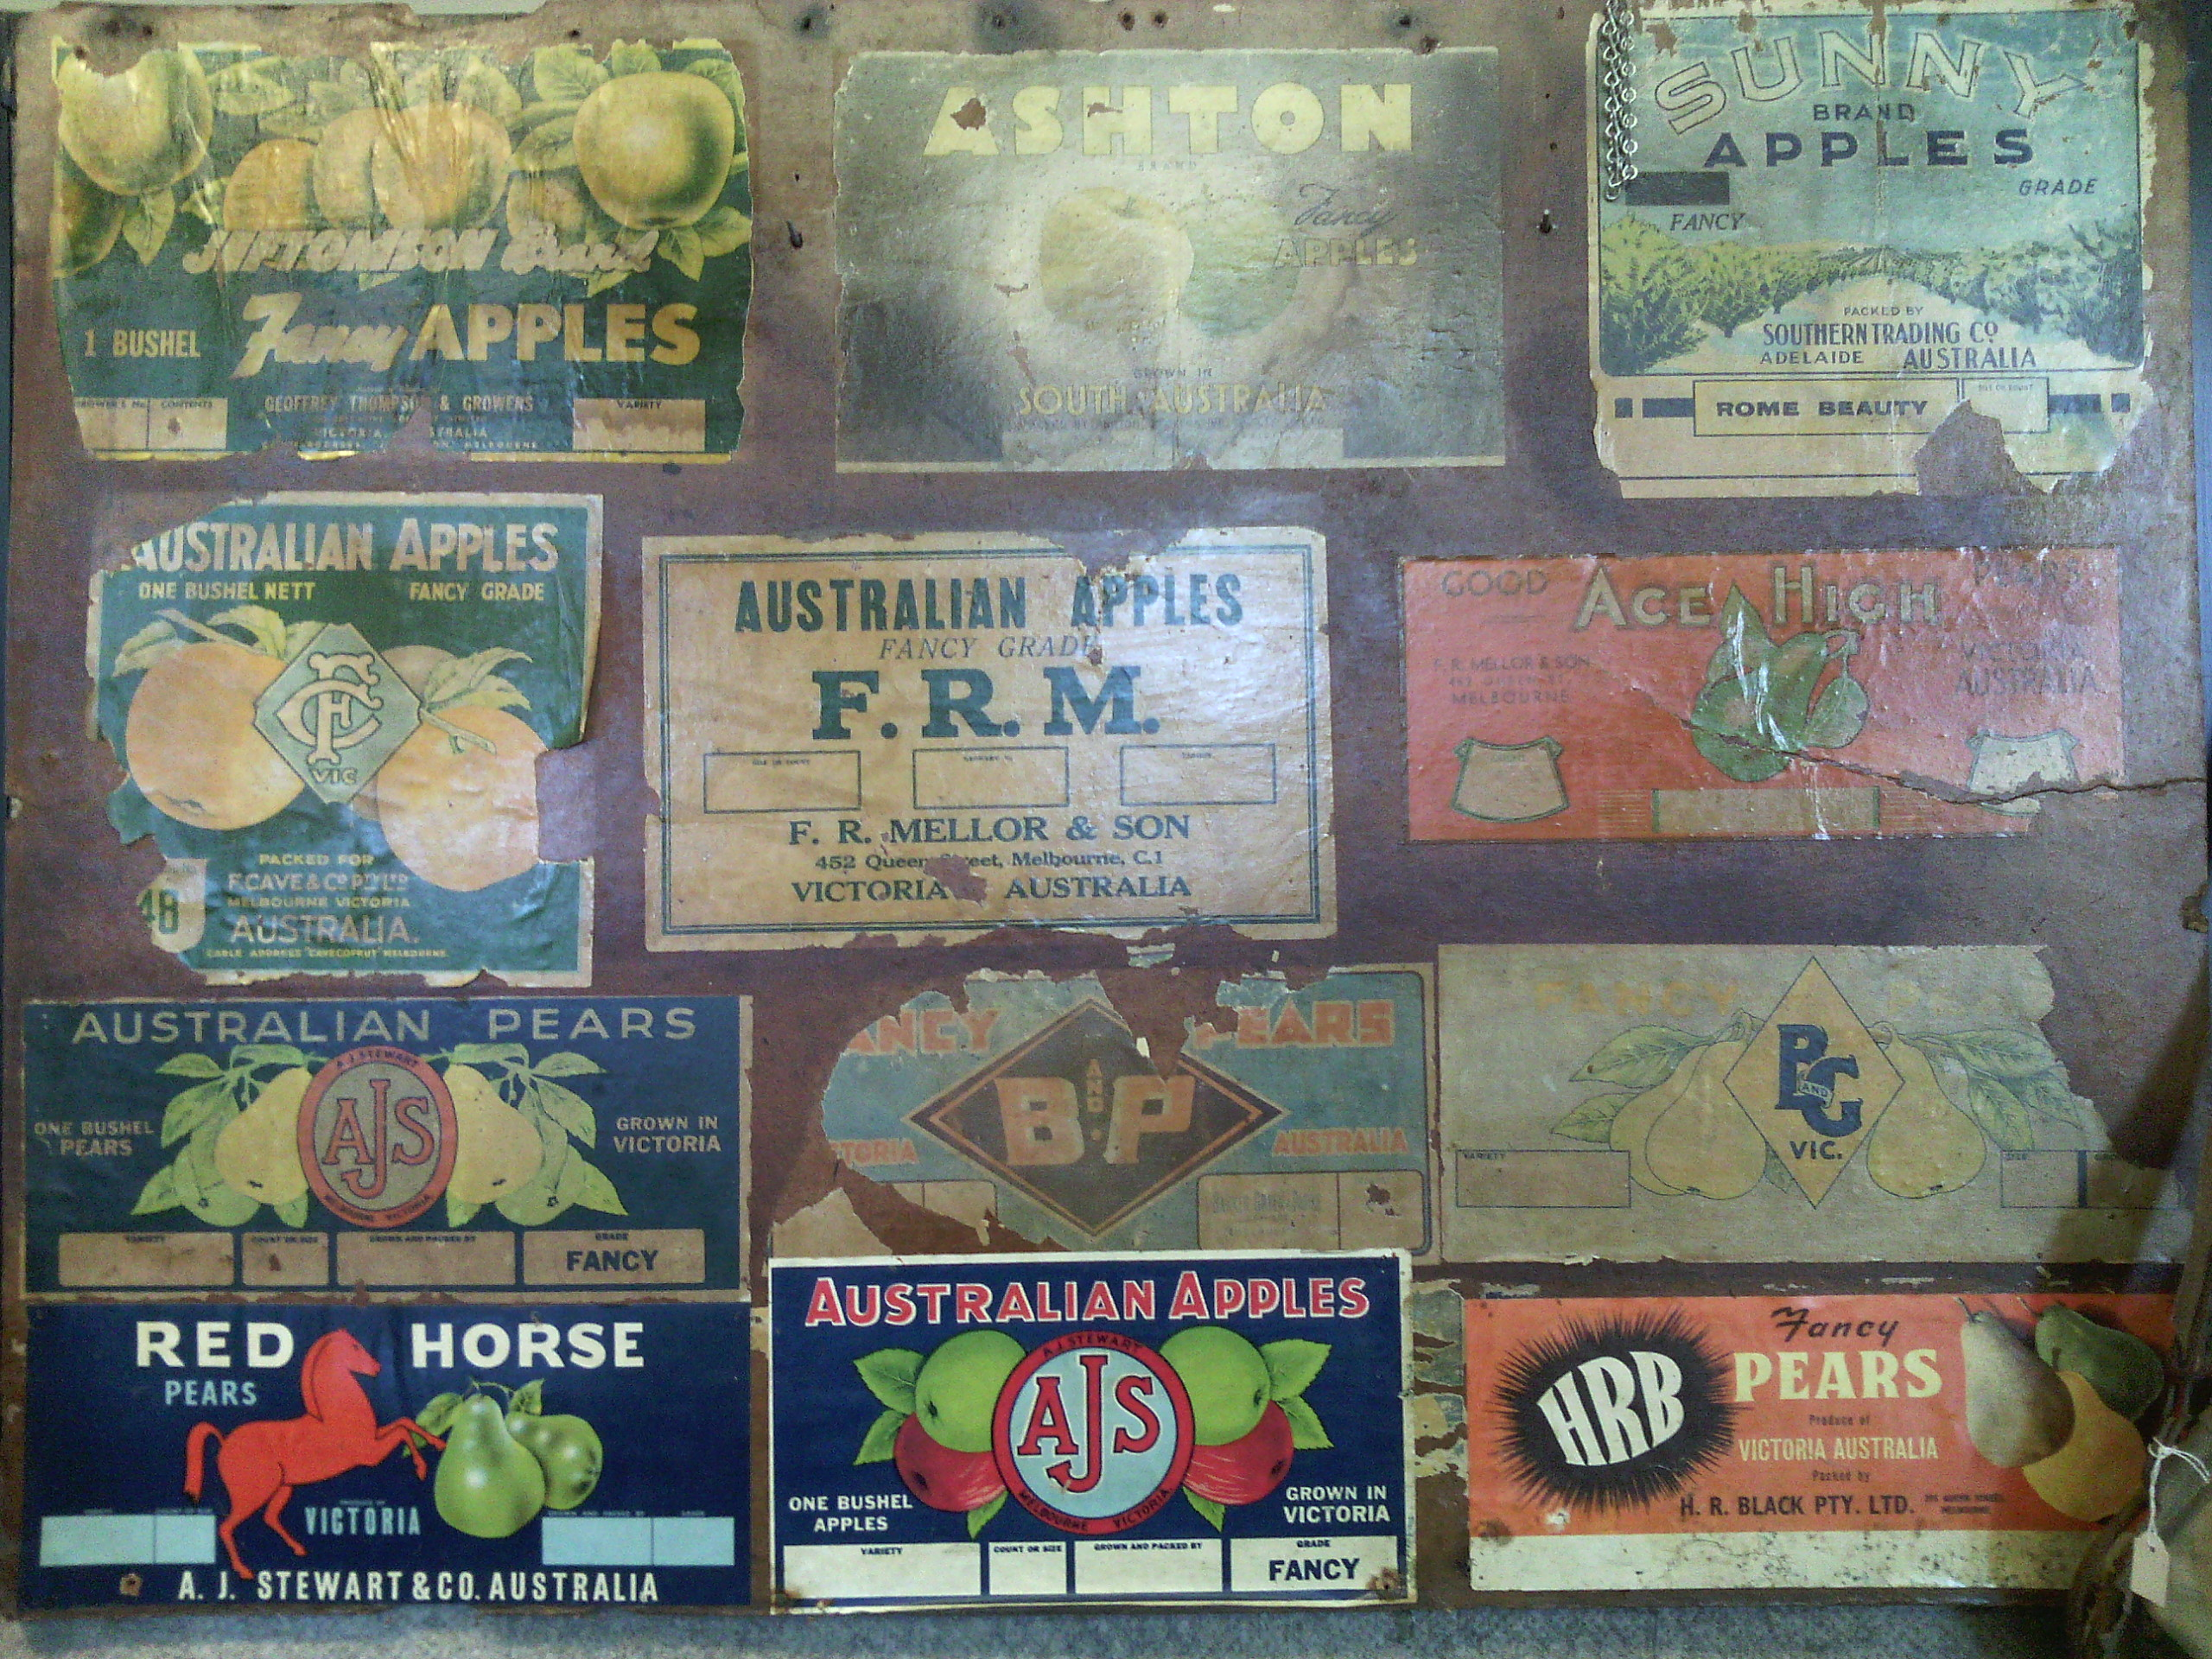 Harcourt Apple Brands